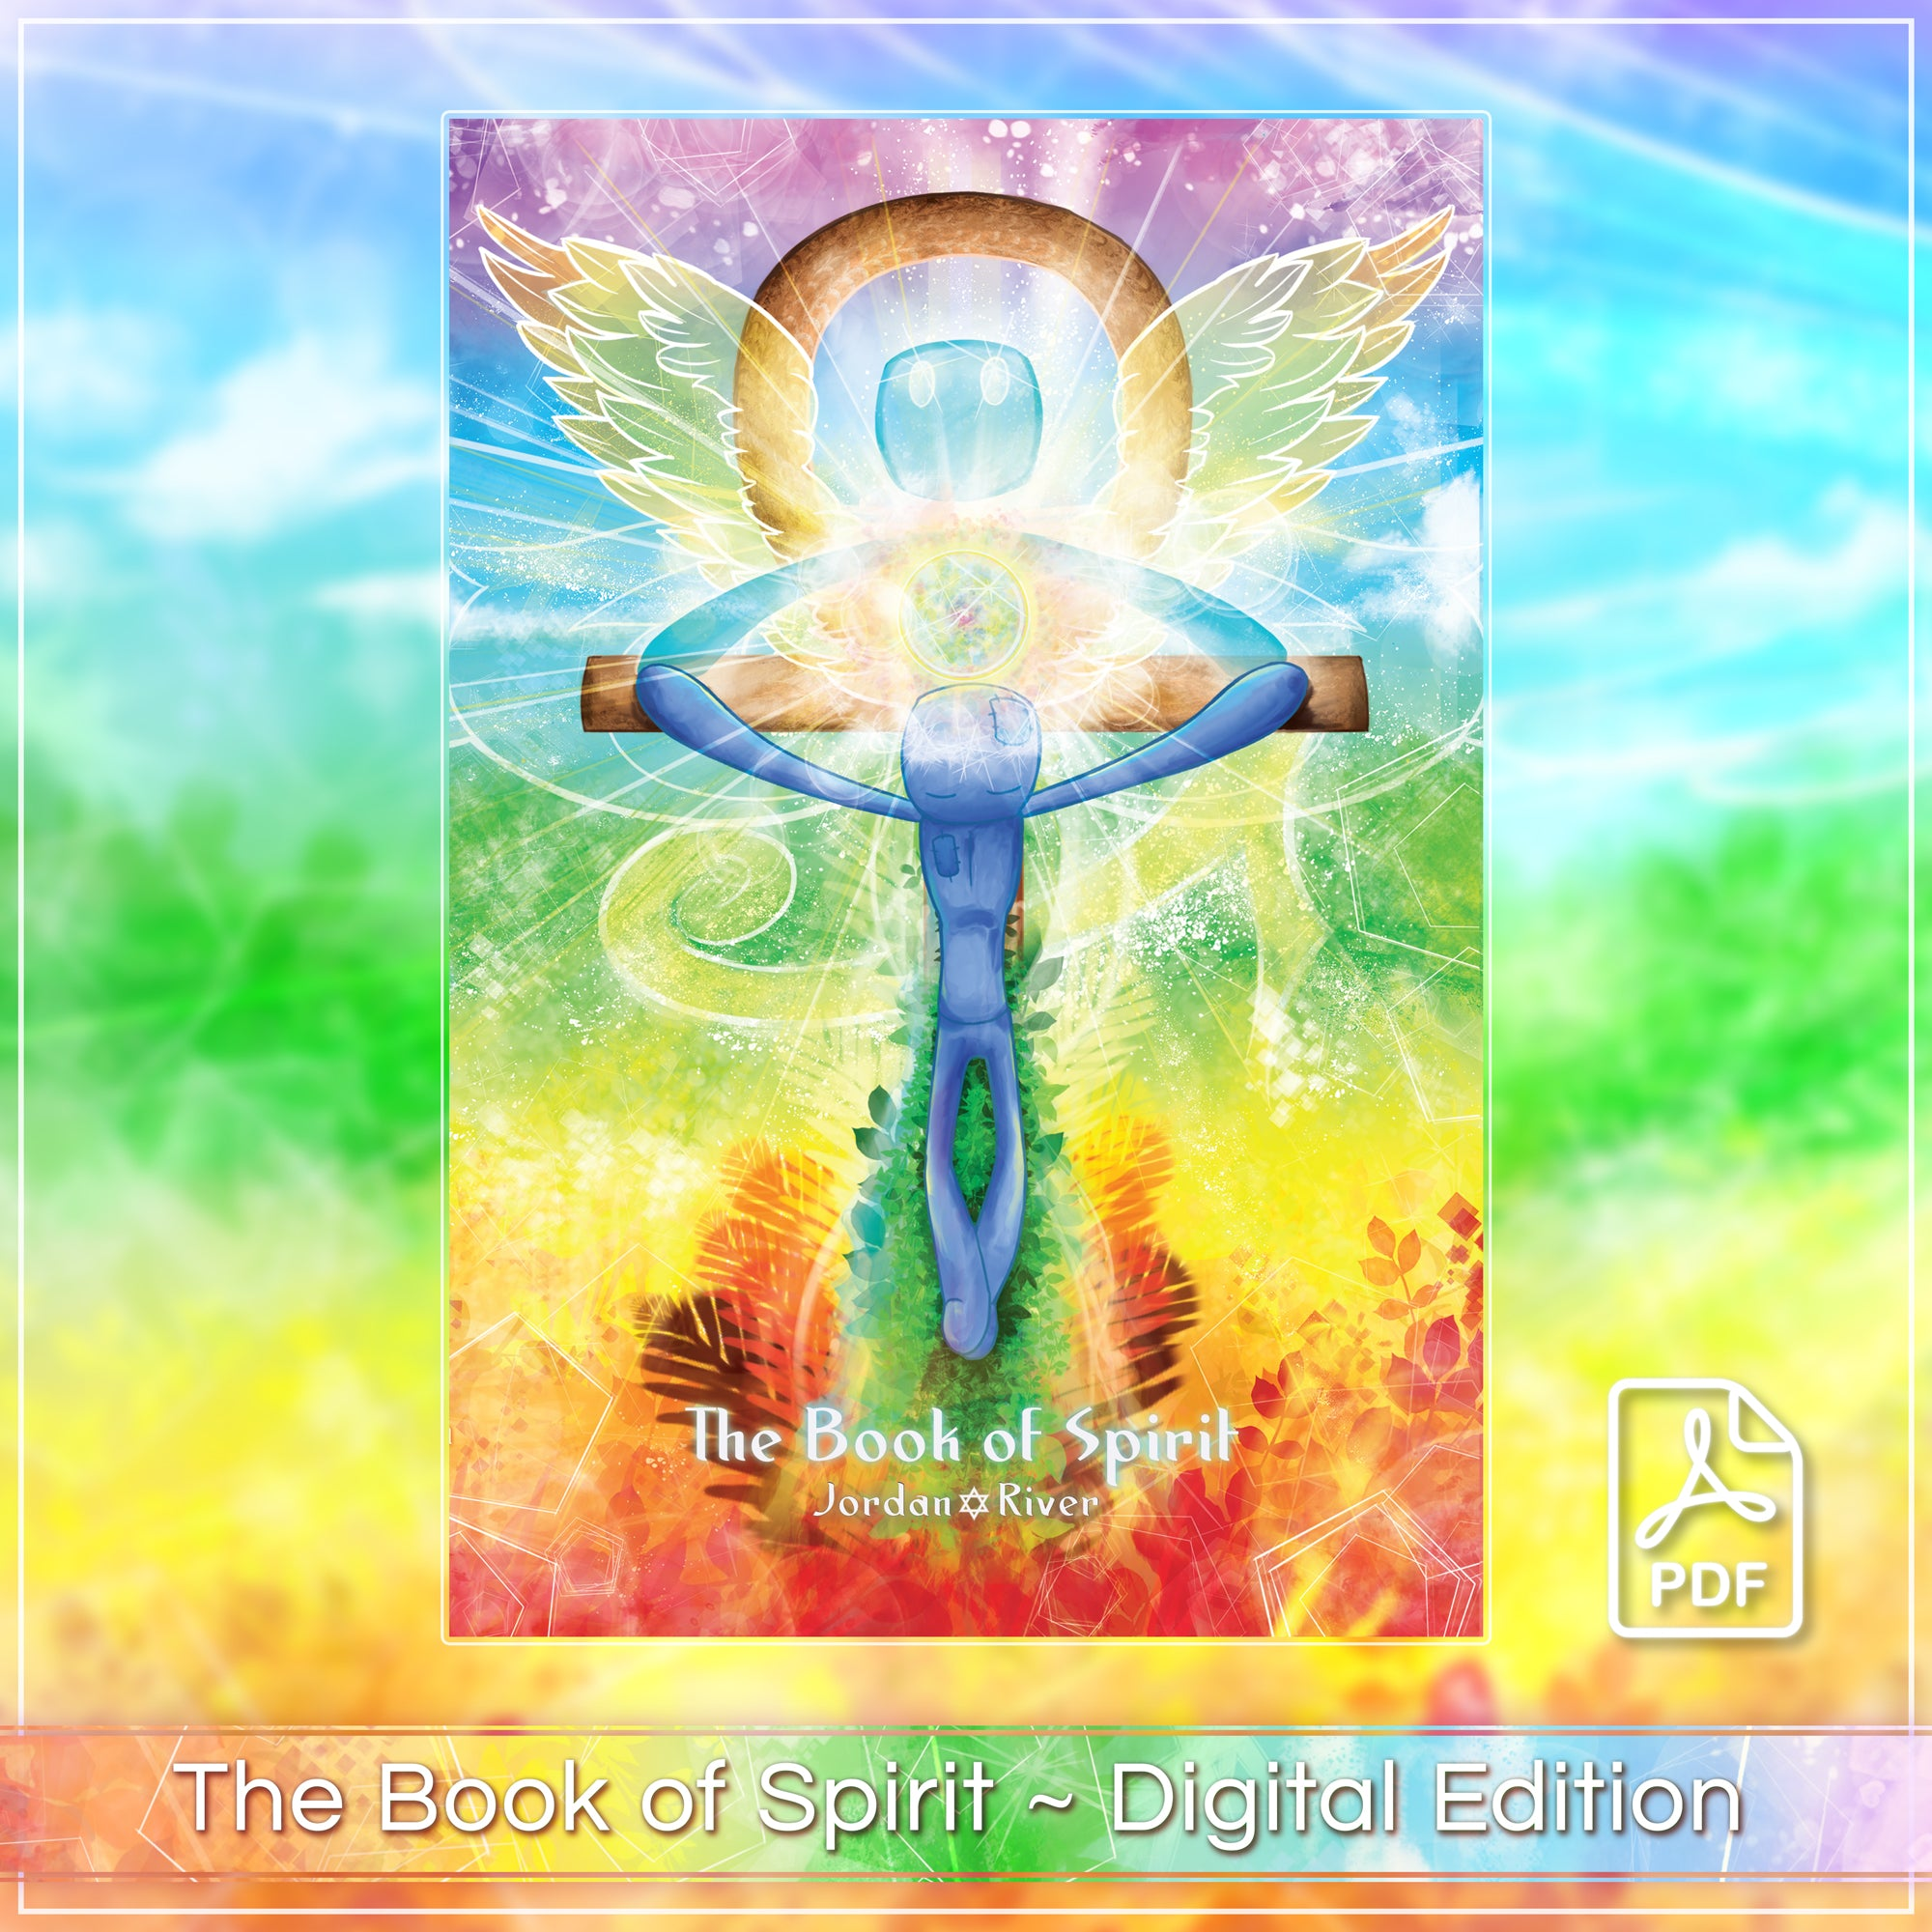 The Book of Spirit ~ Digital Edition